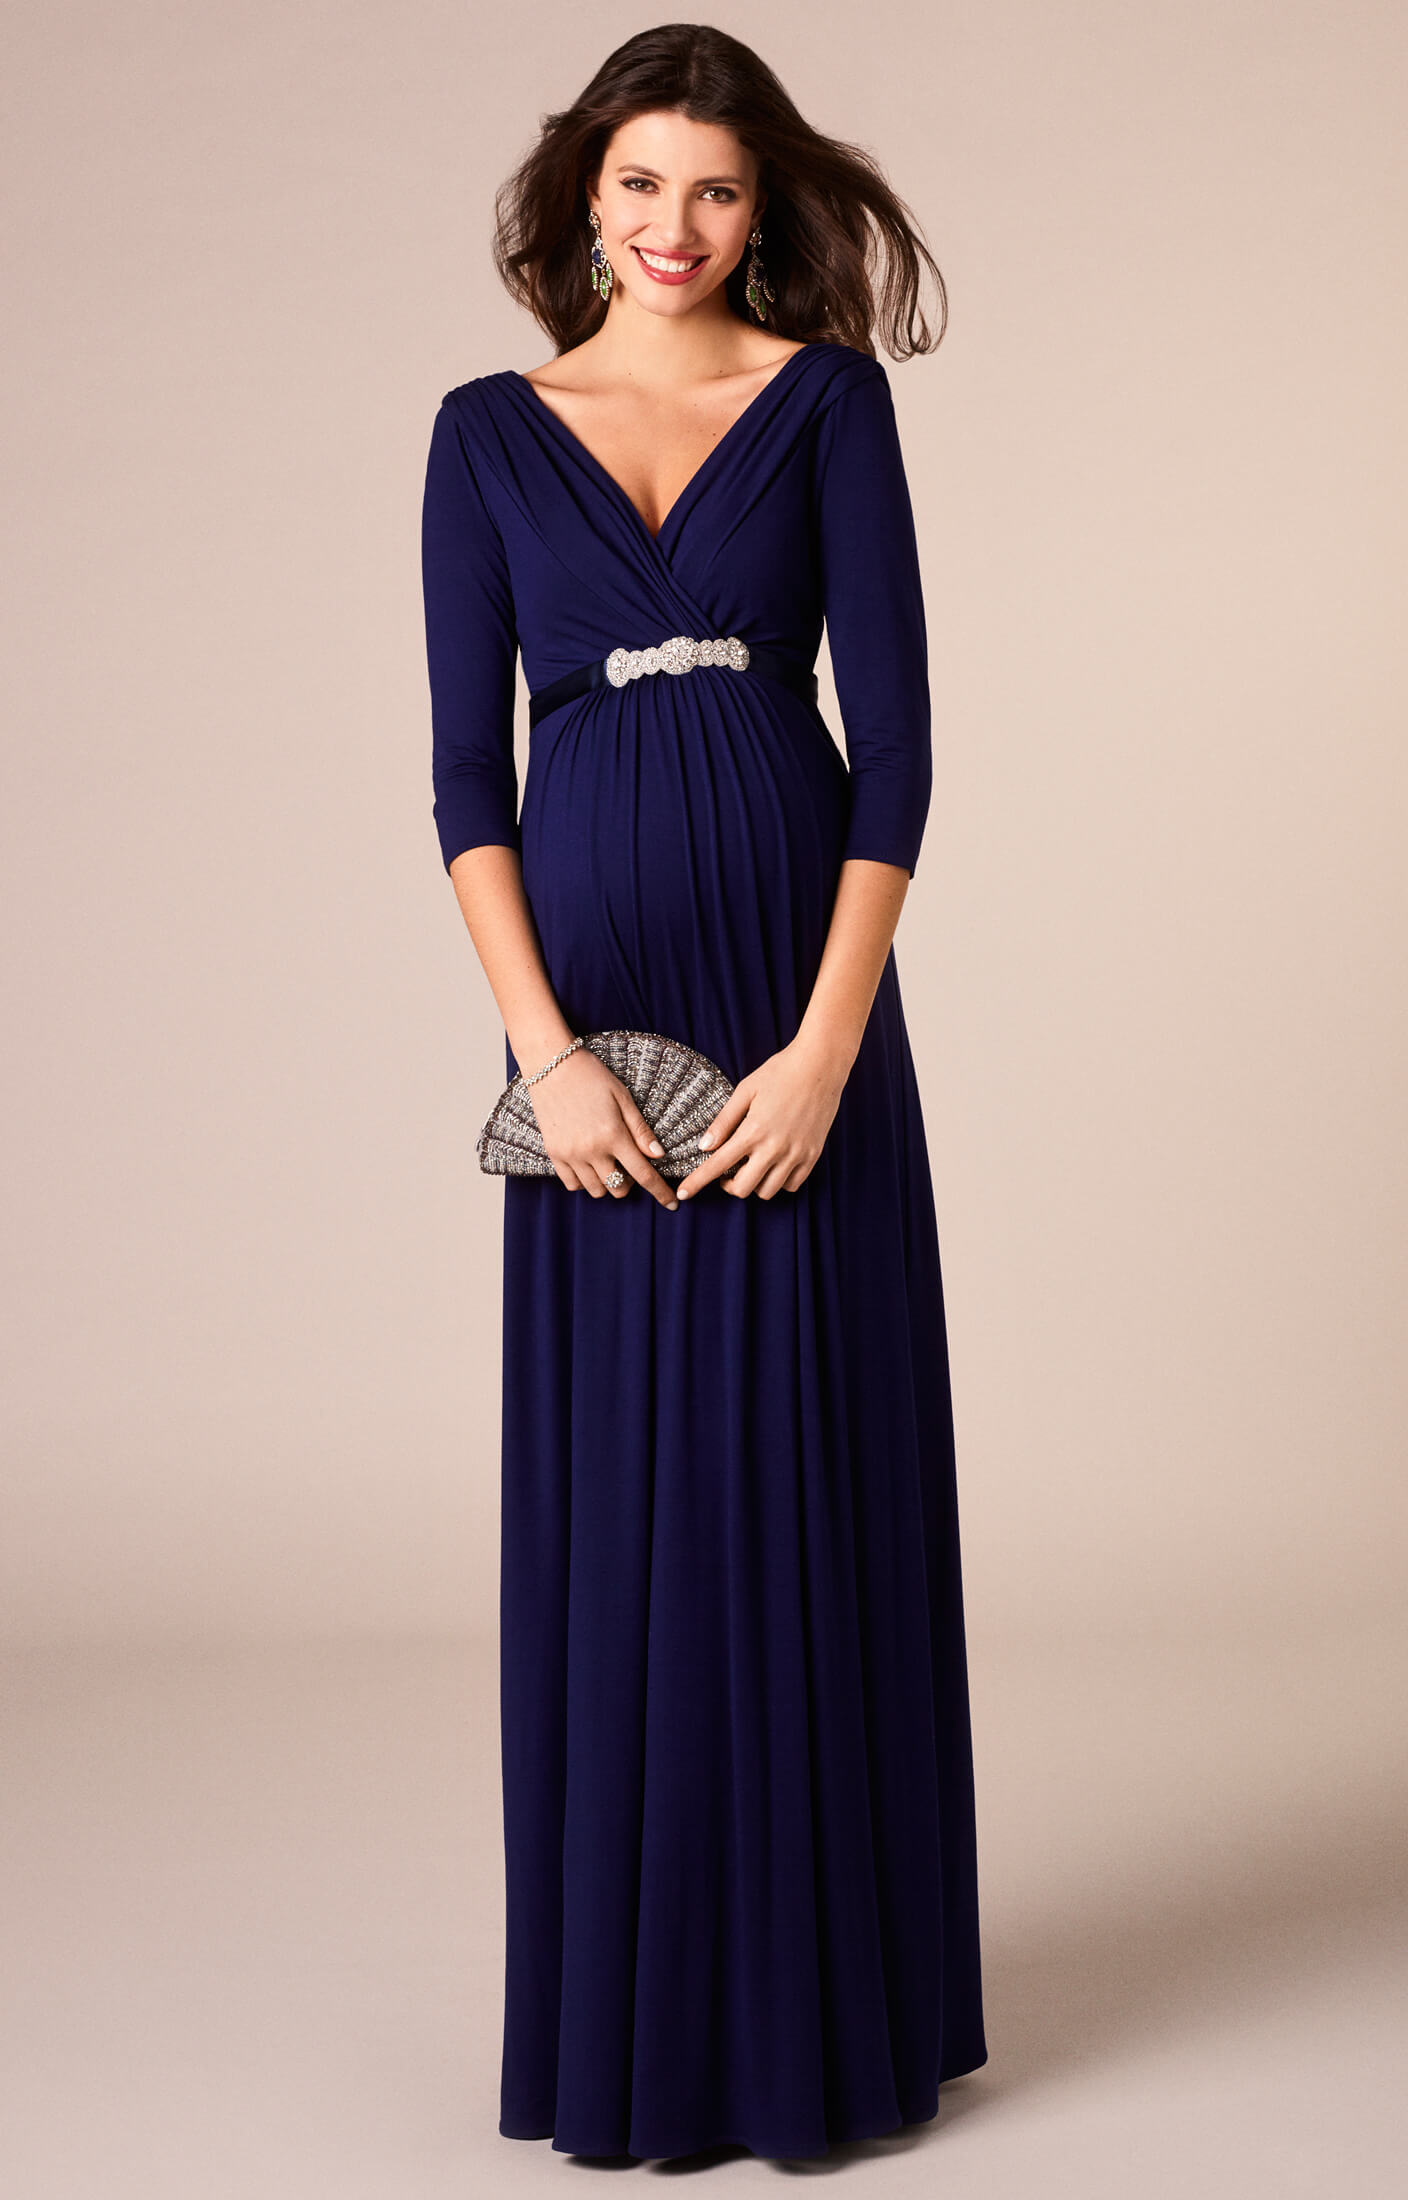 Willow Maternity Gown Long Eclipse Blue - Maternity Wedding Dresses ...